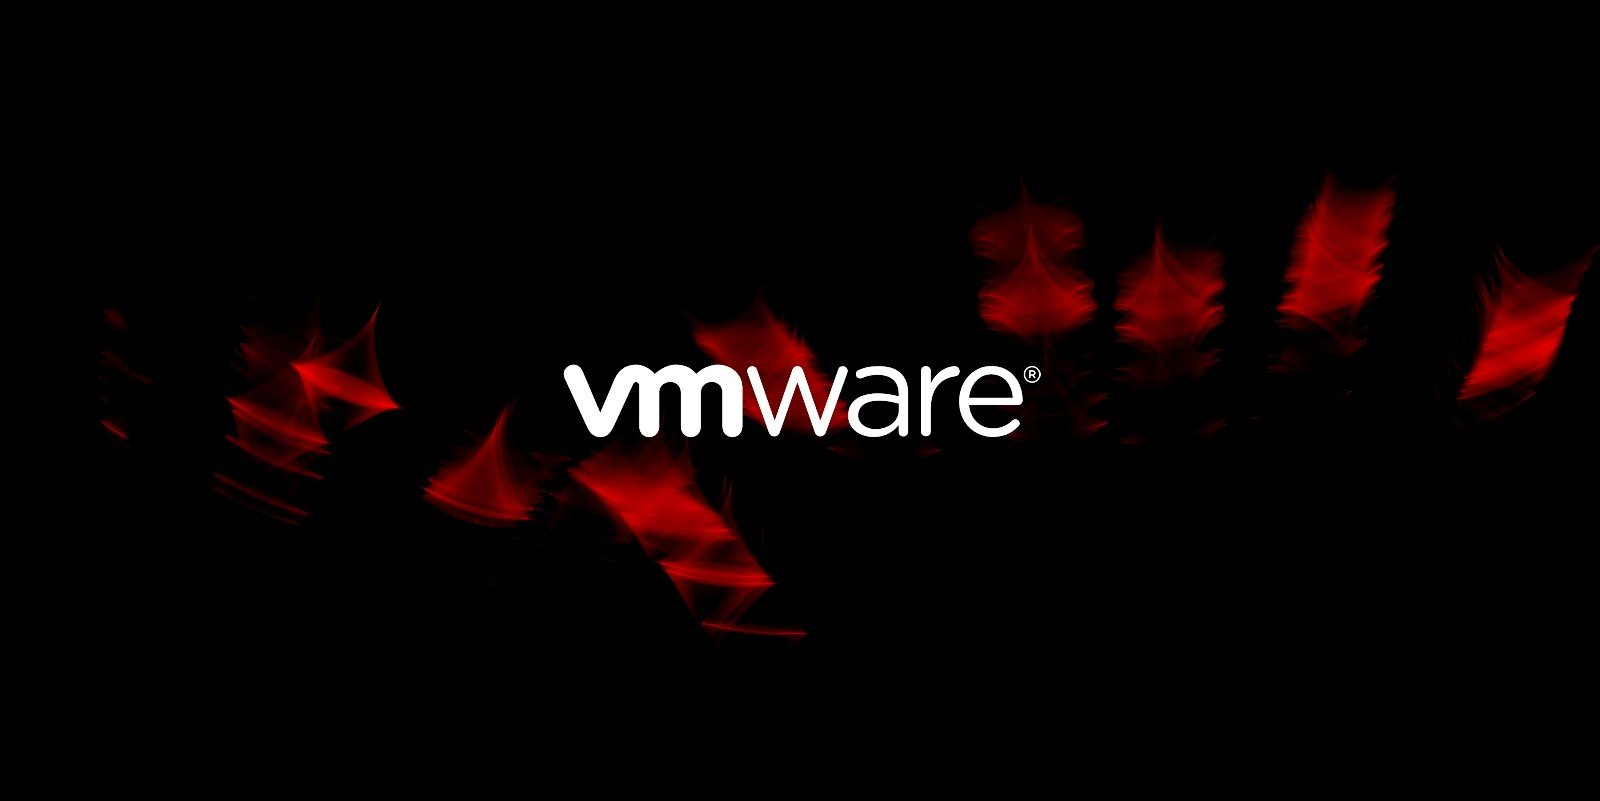 Attackers scan for vulnerable VMware servers after PoC exploit release